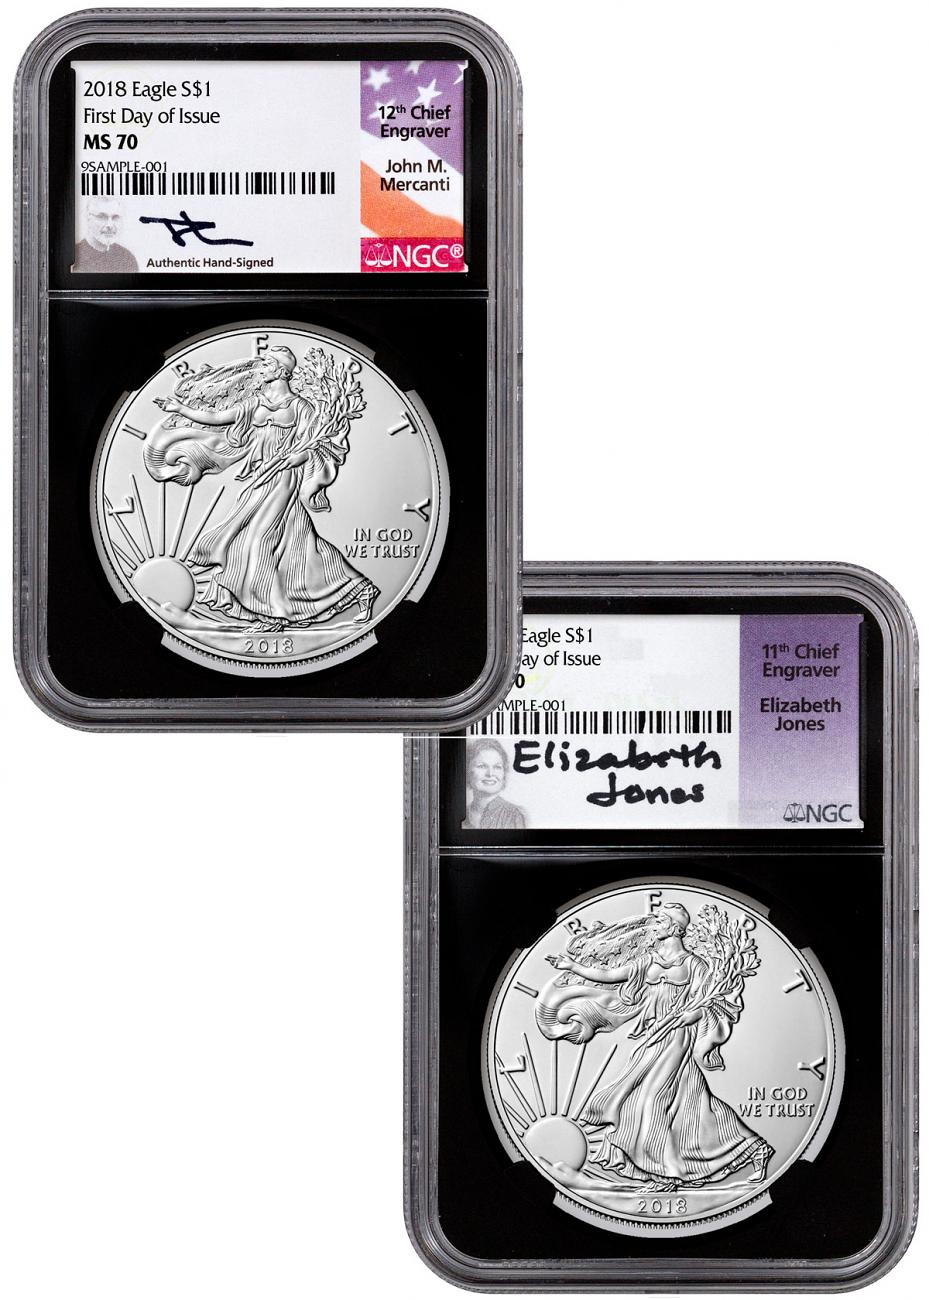 Set of 2 - 2018 American Silver Eagle NGC MS70 FDI Black Core Holder Mercanti + Jones Signed Labels